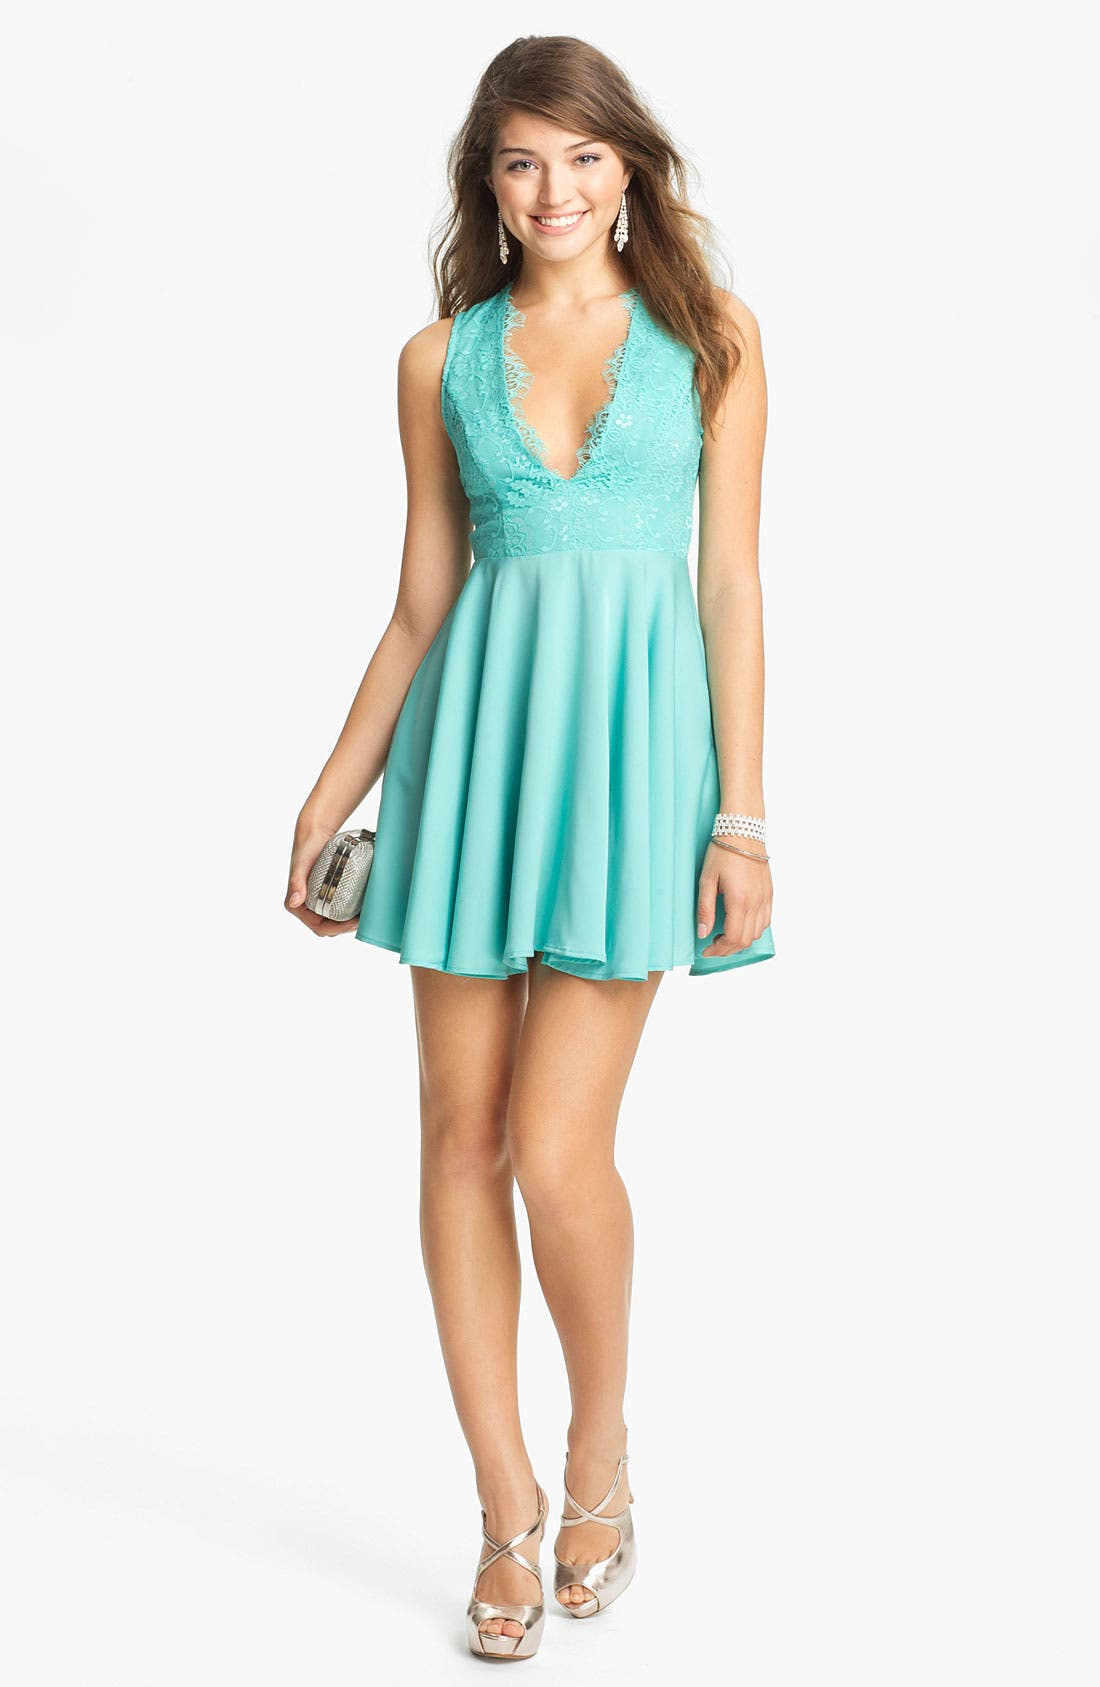 Alternate Image 1 Selected - Keepsake the Label 'Need Your Love' Fit & Flare Dress